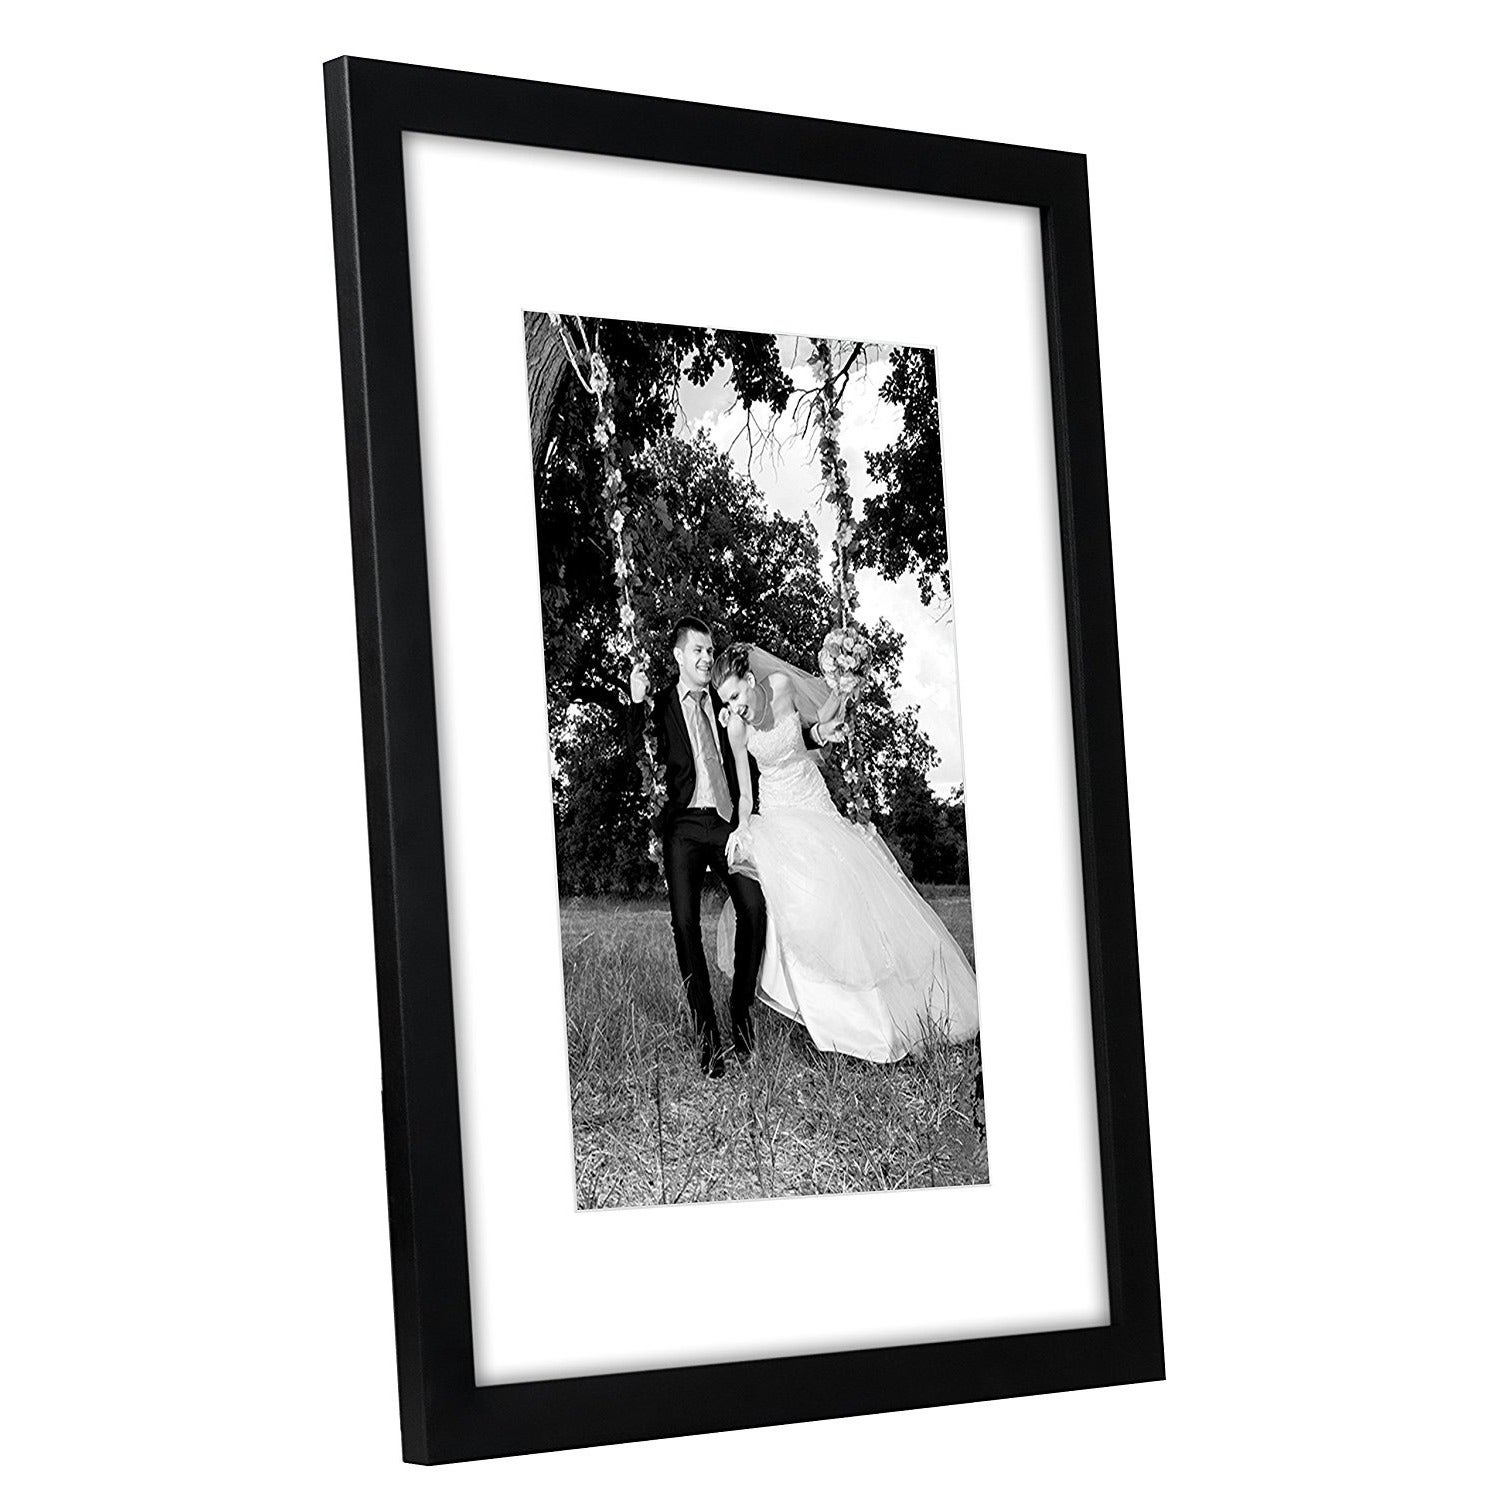 Shop 12 X 16 Inch Black Frame With Glass Front And Hanging Hardware